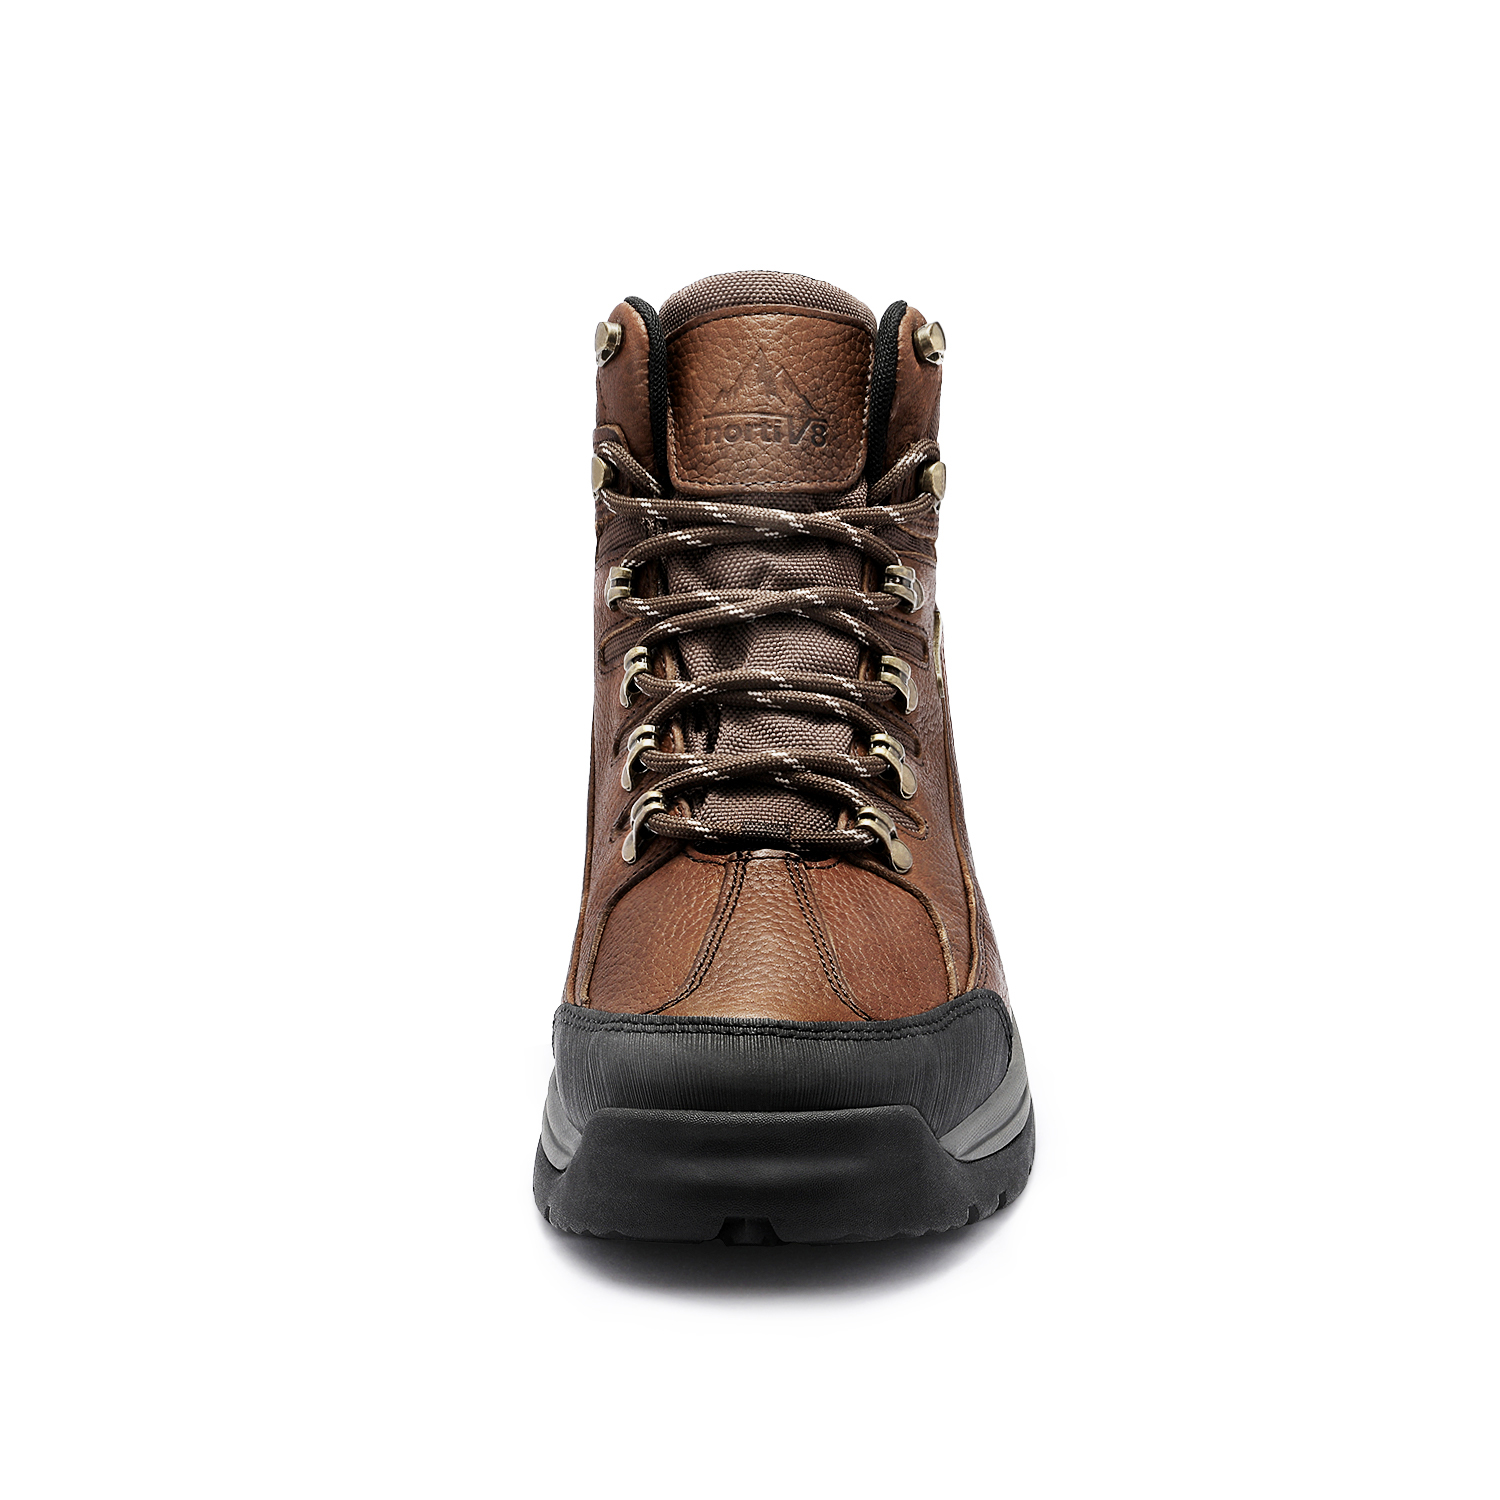 NORTIV-8-Men-039-s-Safety-Shoes-Steel-Toe-Work-Boots-Indestructible-Waterproof-Boots thumbnail 11